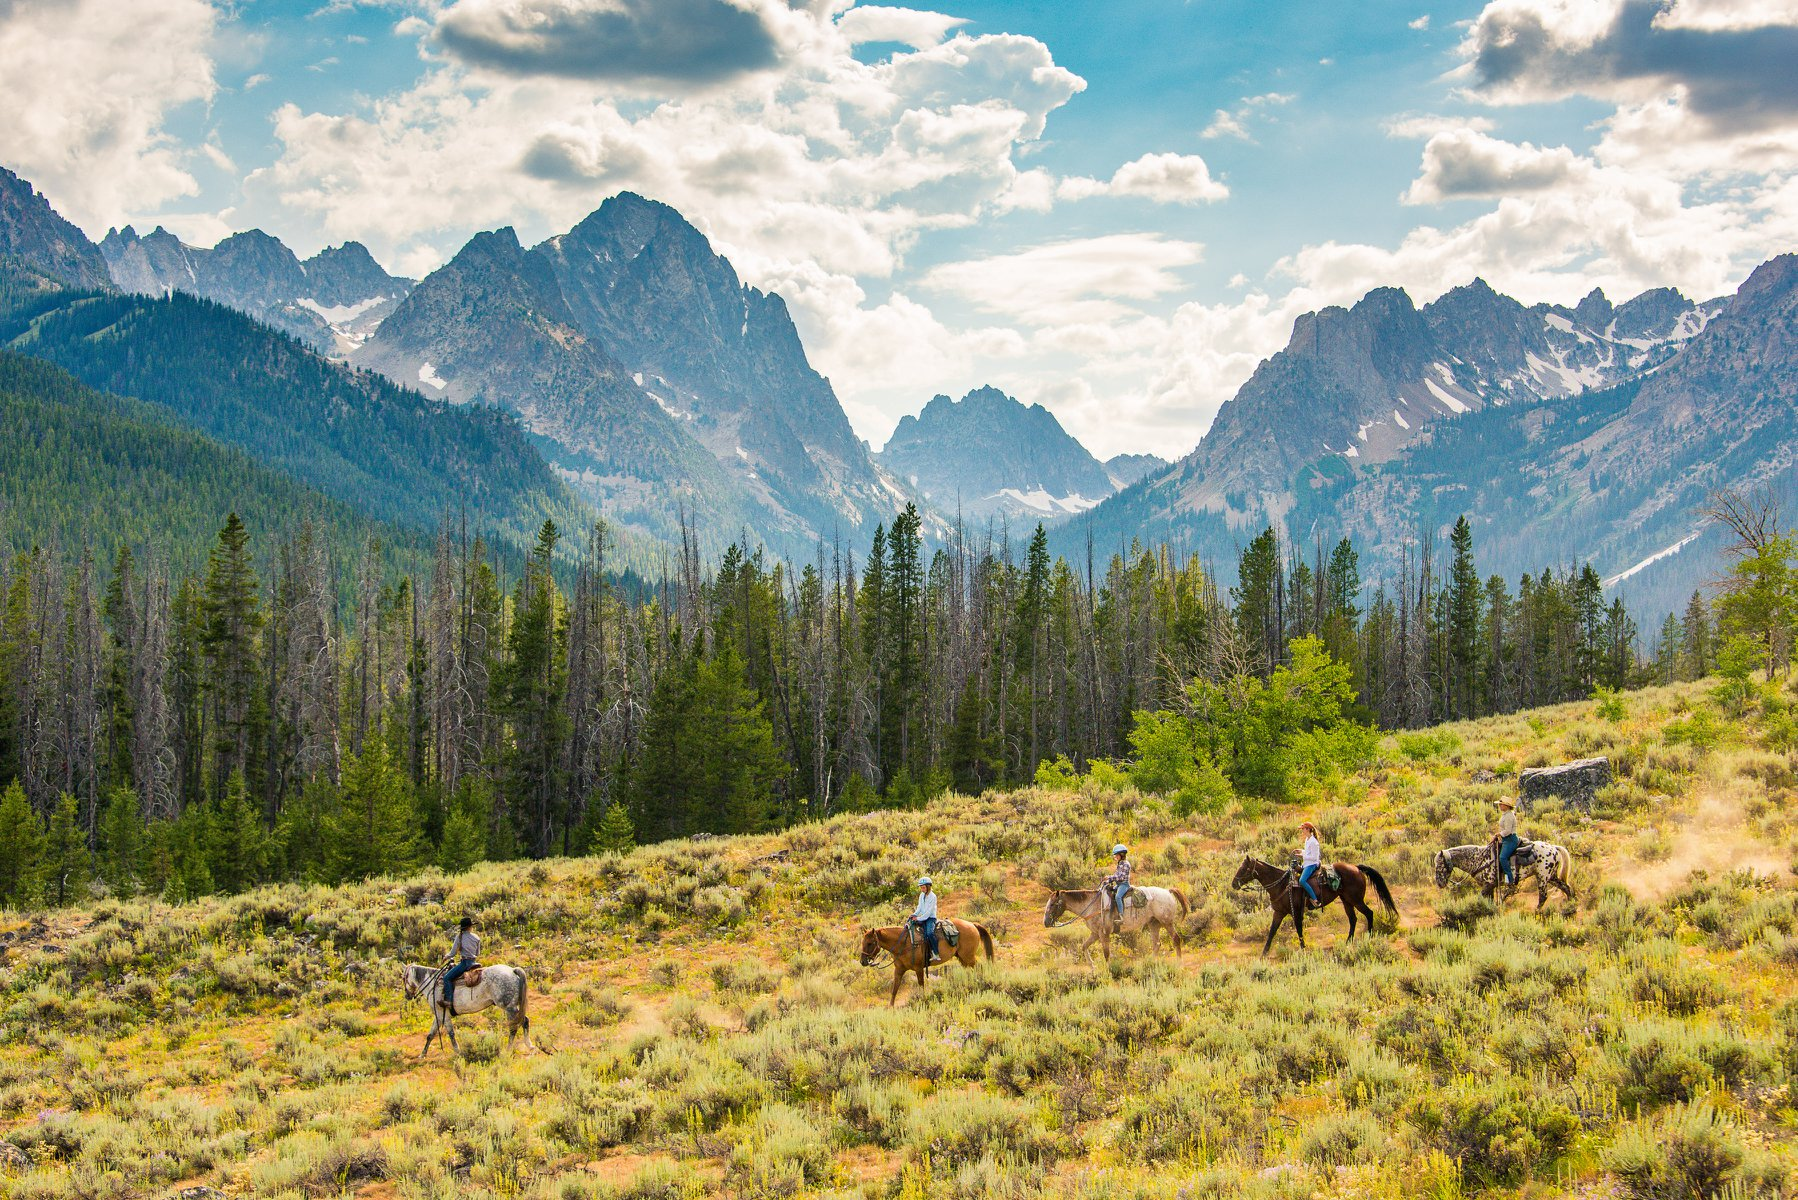 Ride Through Idaho's Sawtooth Wilderness With Mystic Saddle Ranch For An Idyllic Family Adventure